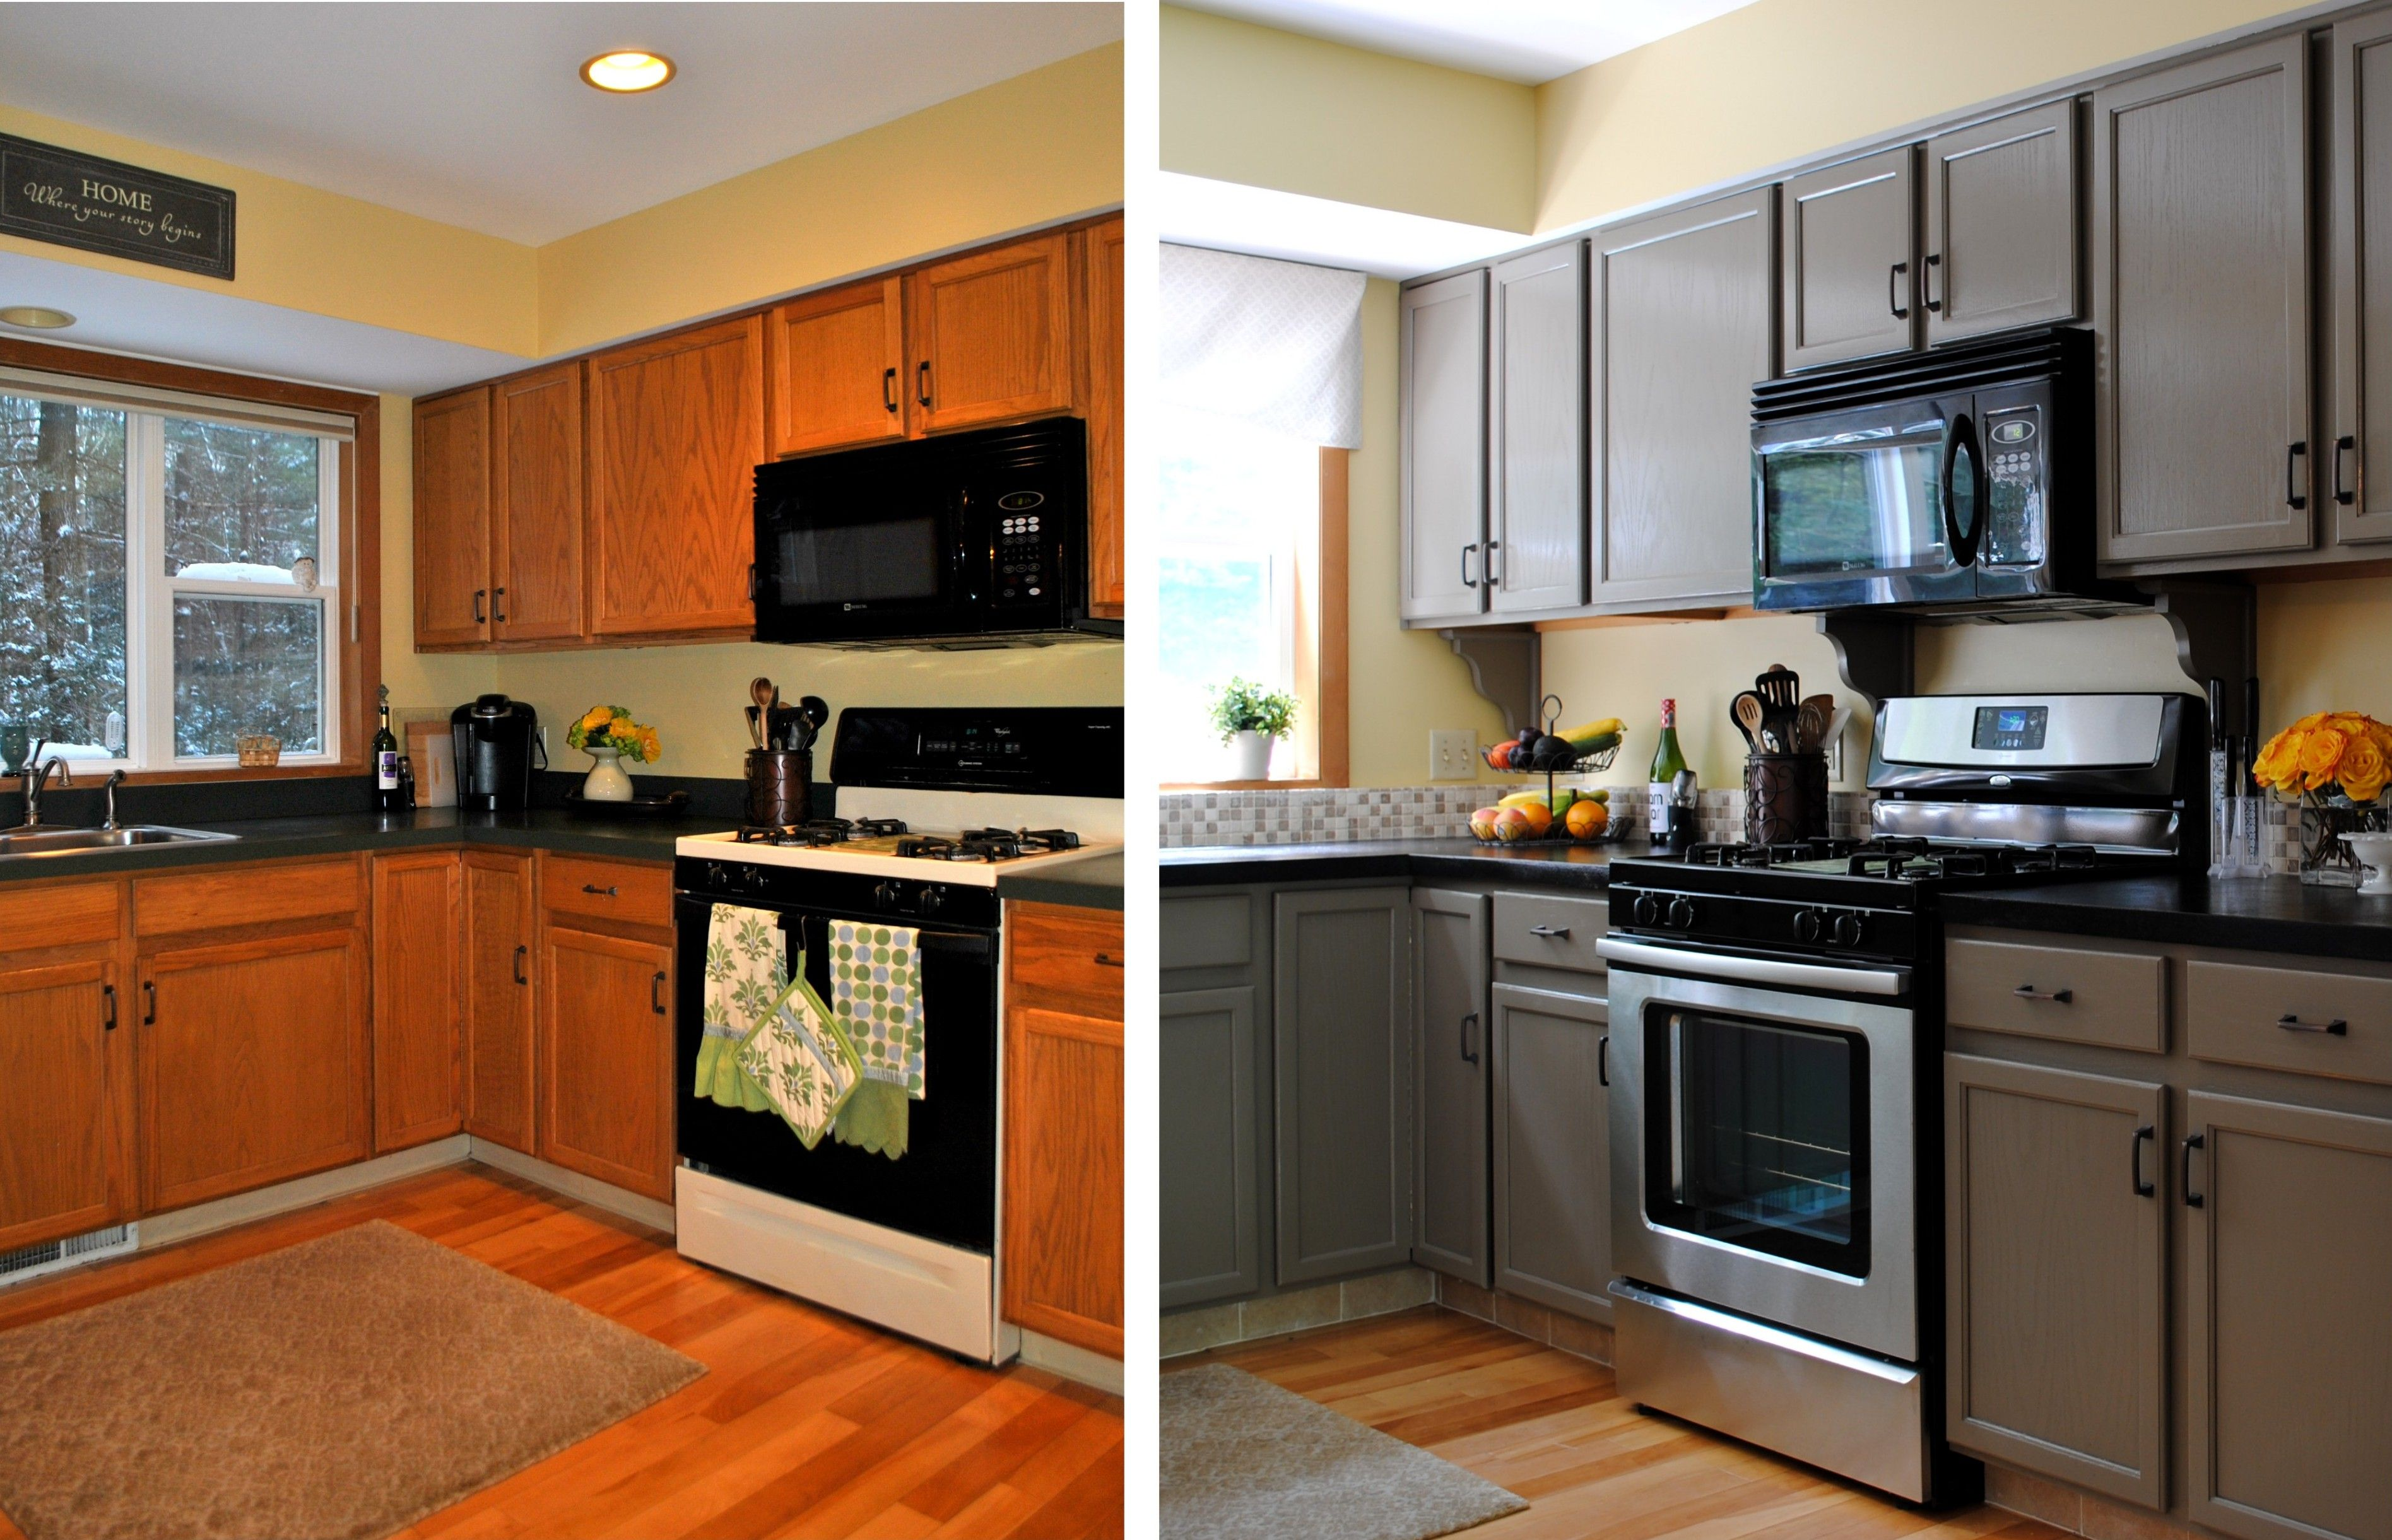 cool best painted kitchen cabinets before and after 64 for small home remodel ideas with painte on kitchen cabinets painted before and after id=78583